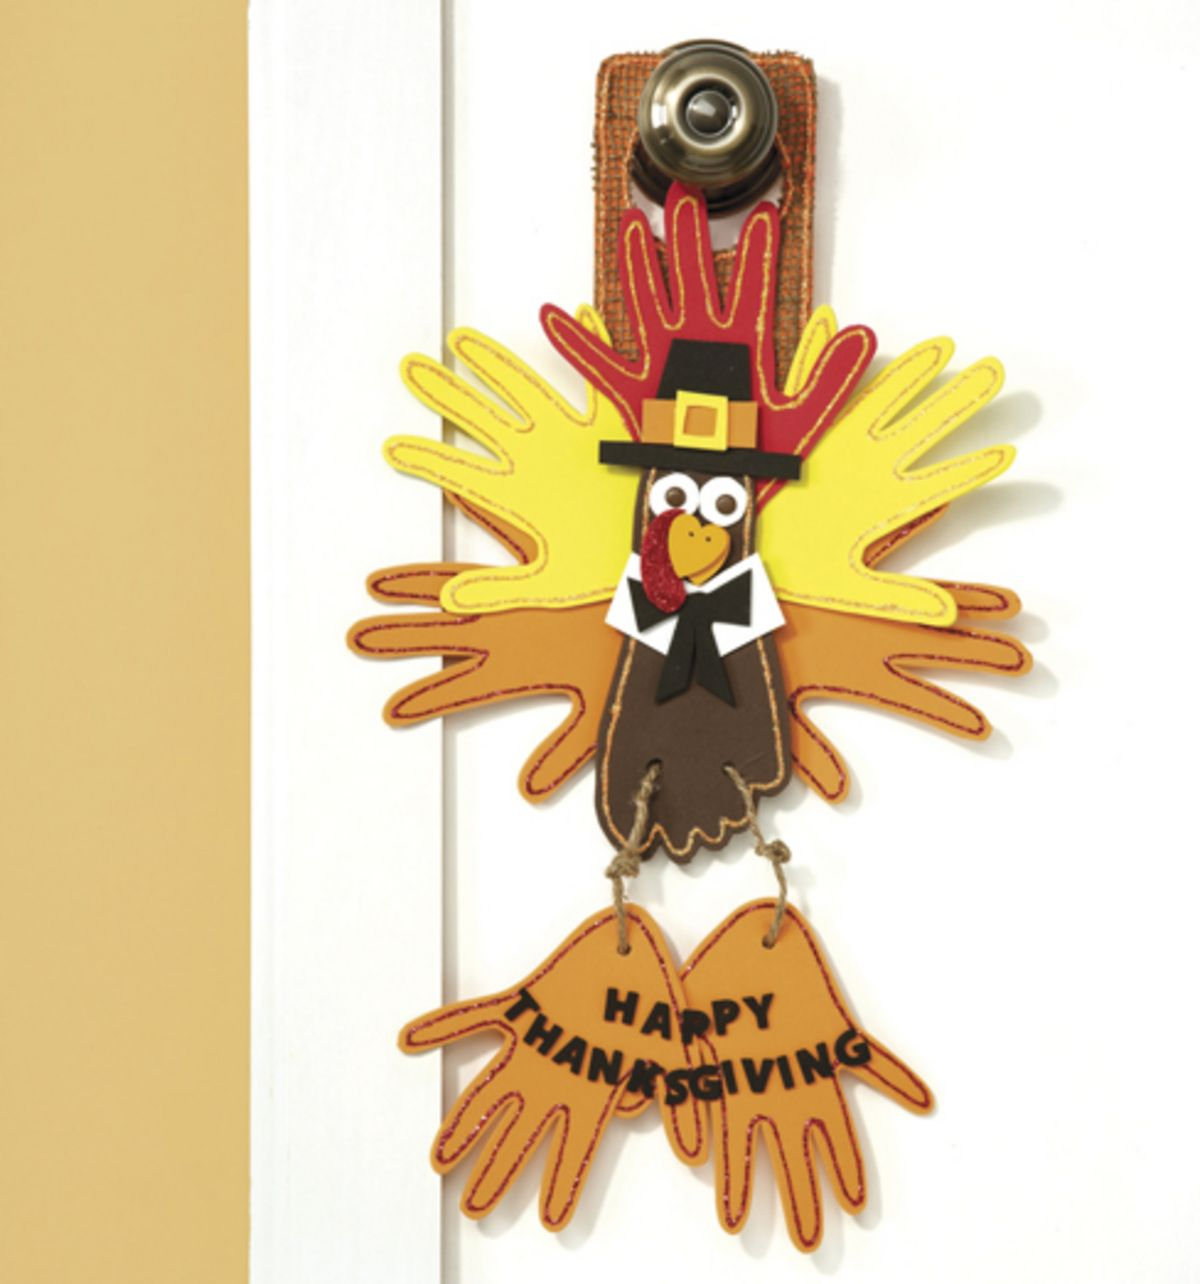 Welcome Guests With Fall Door Decorations: Welcome Your Thanksgiving Guests With This Turkey Door